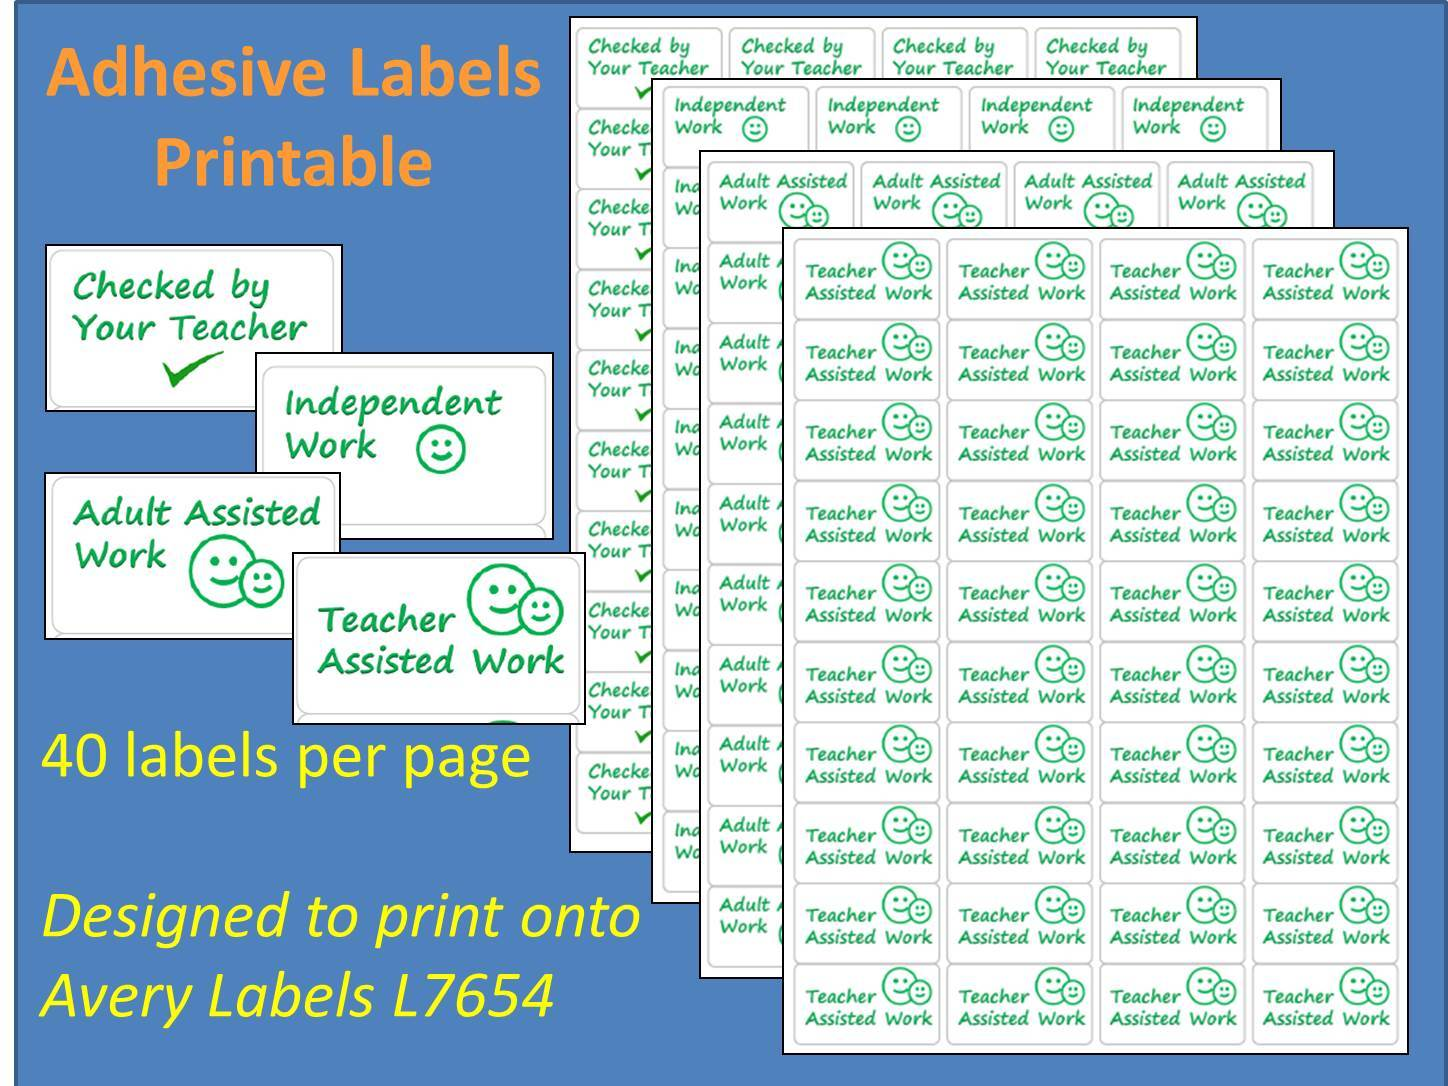 Marking Adhesive Labels Printable Time Saving Sticky Label L7654 Adult Assisted Teacher Assisted Independent Work Checked by Your Teacher